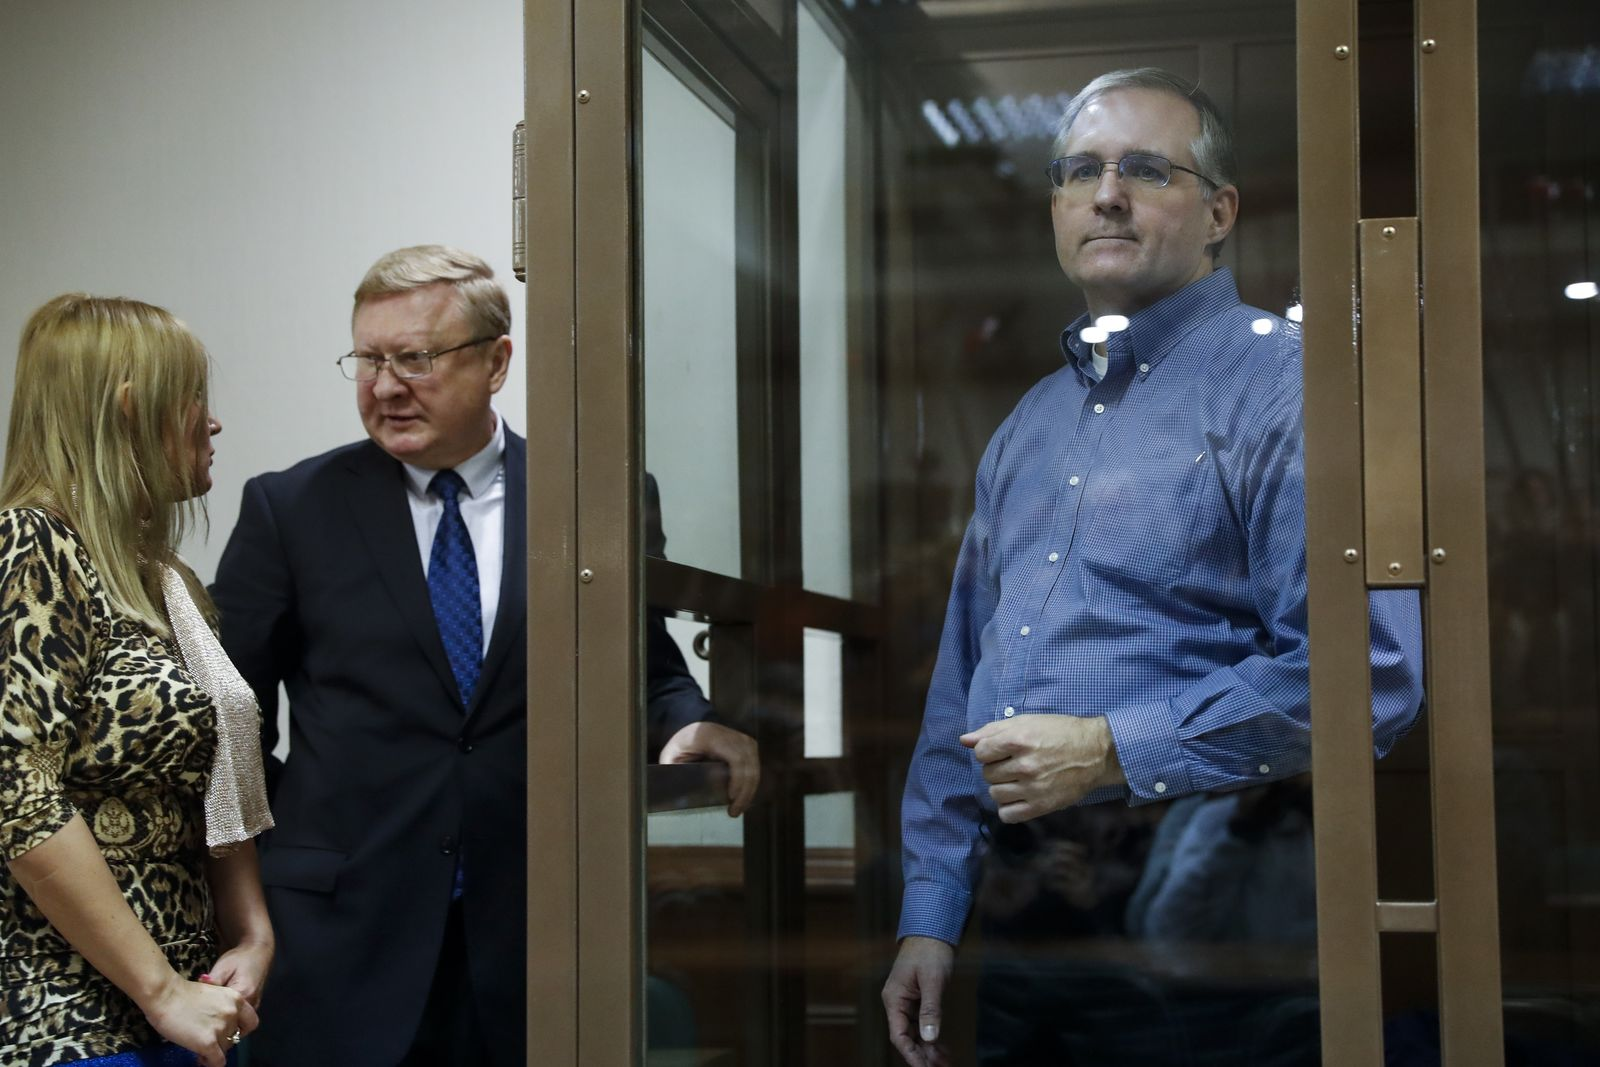 Paul Whelan, a former U.S. Marine, who was arrested in Moscow at the end of last year, right, looks through a cage's glass as his lawyers talk to each other in a court room in Moscow, Russia, Tuesday, Jan. 22, 2019. (AP Photo/Pavel Golovkin)